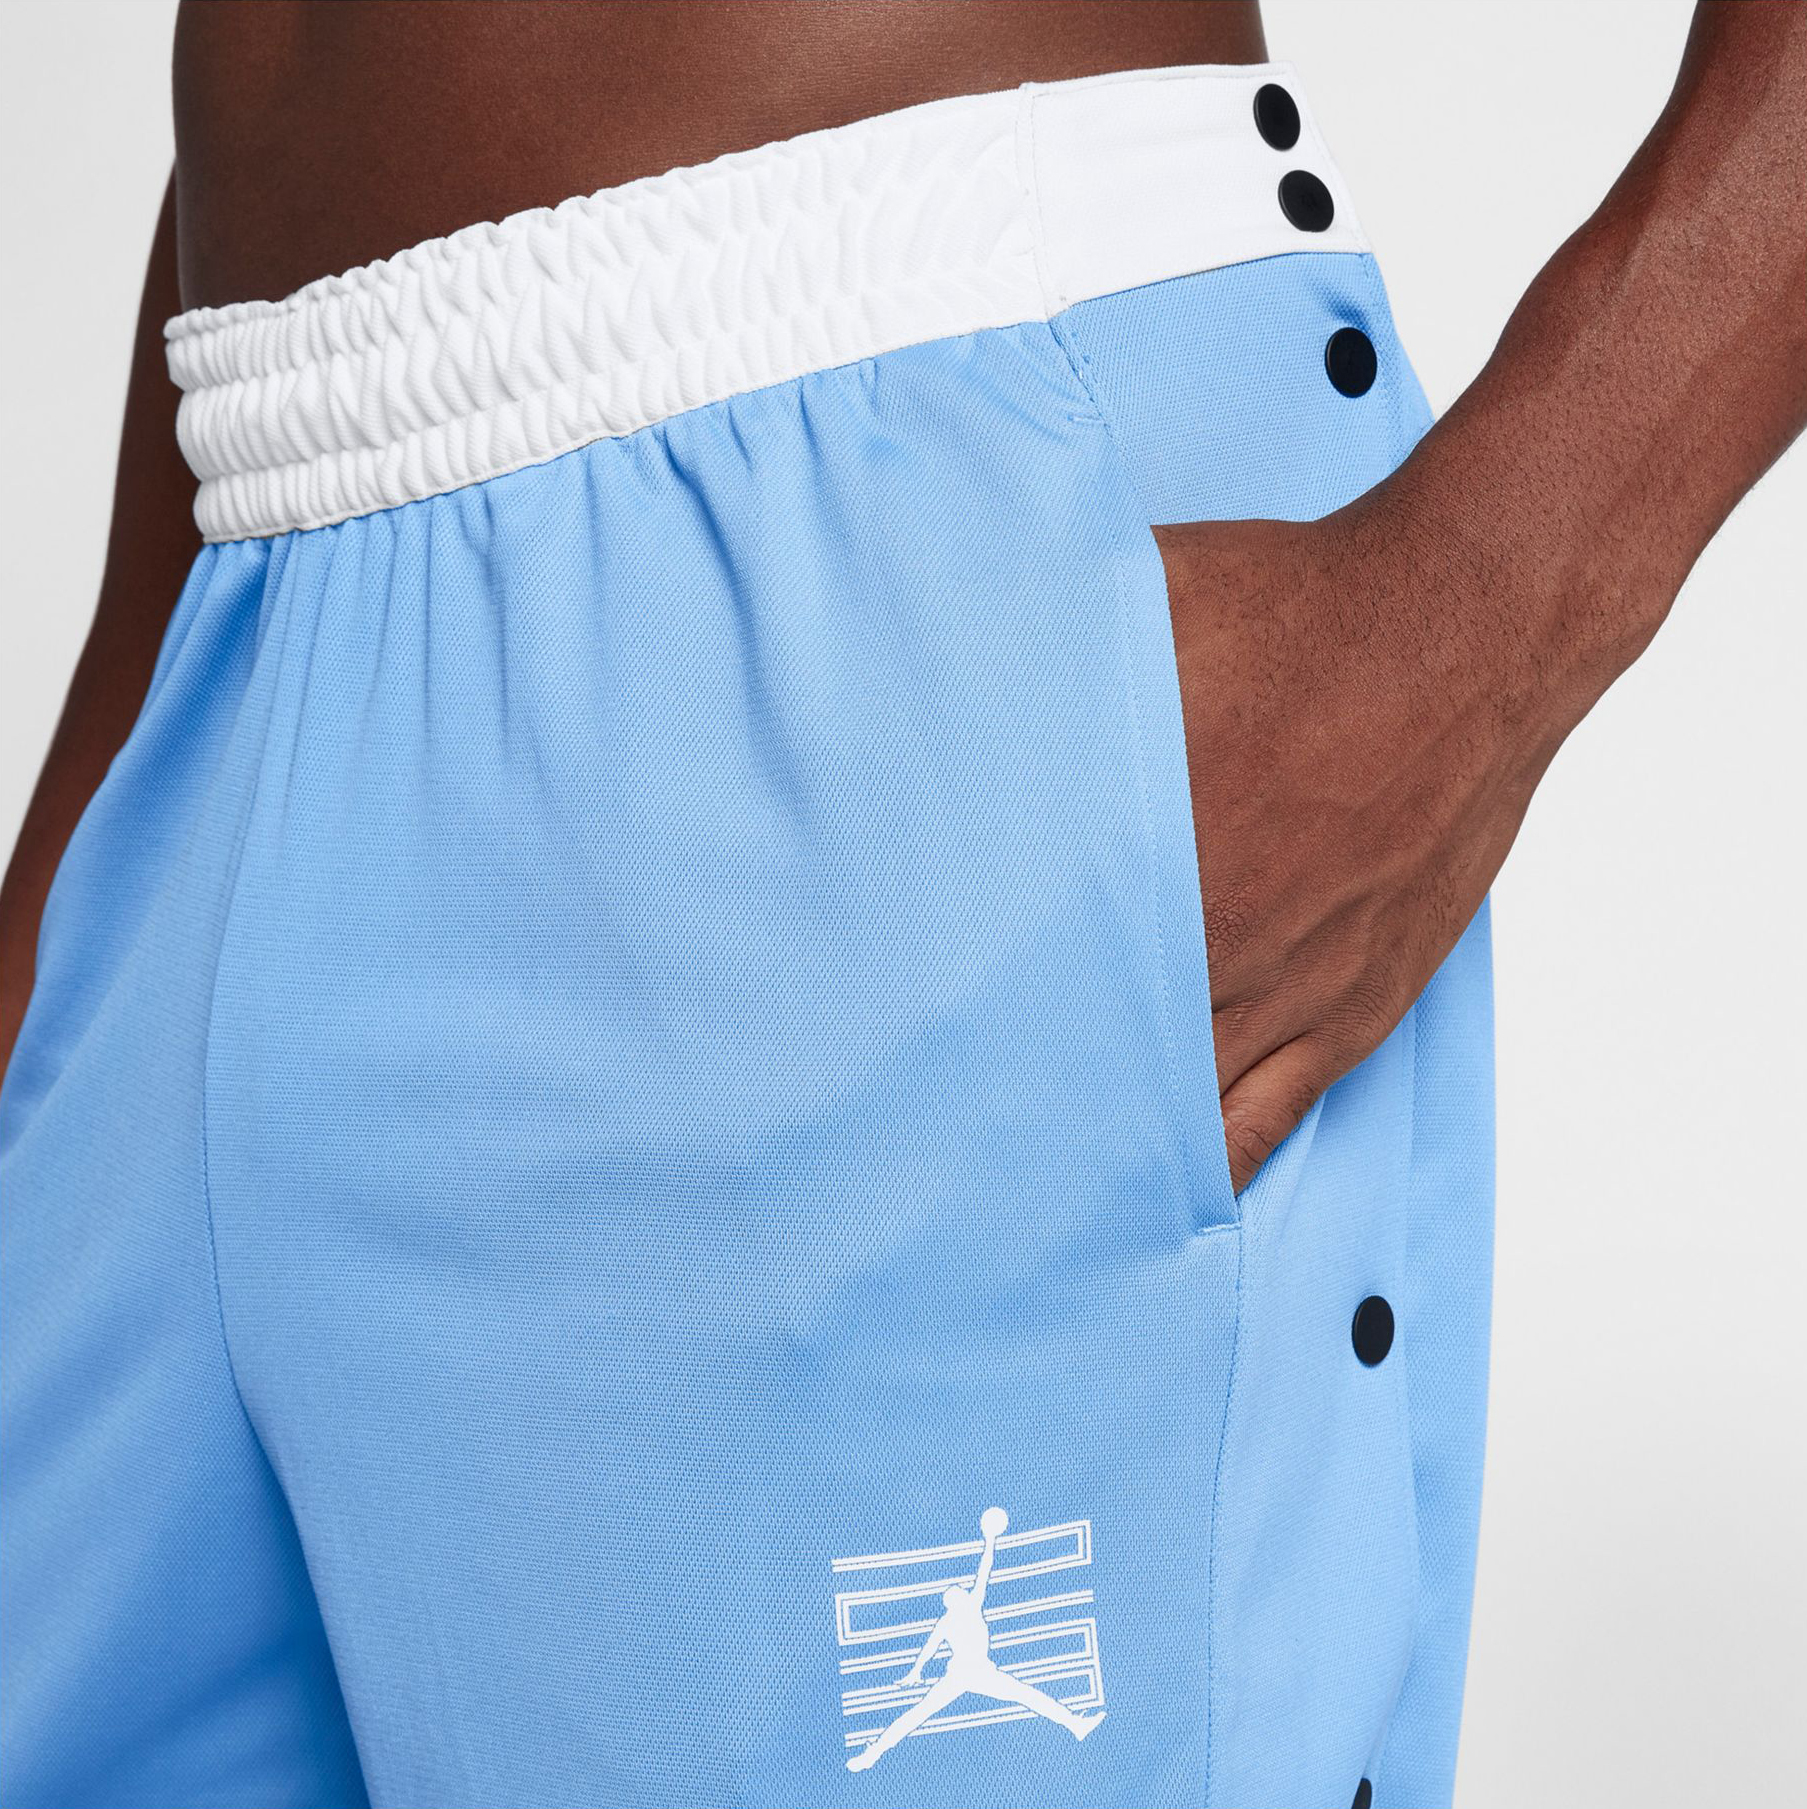 jordan-11-win-like-82-unc-pants-3